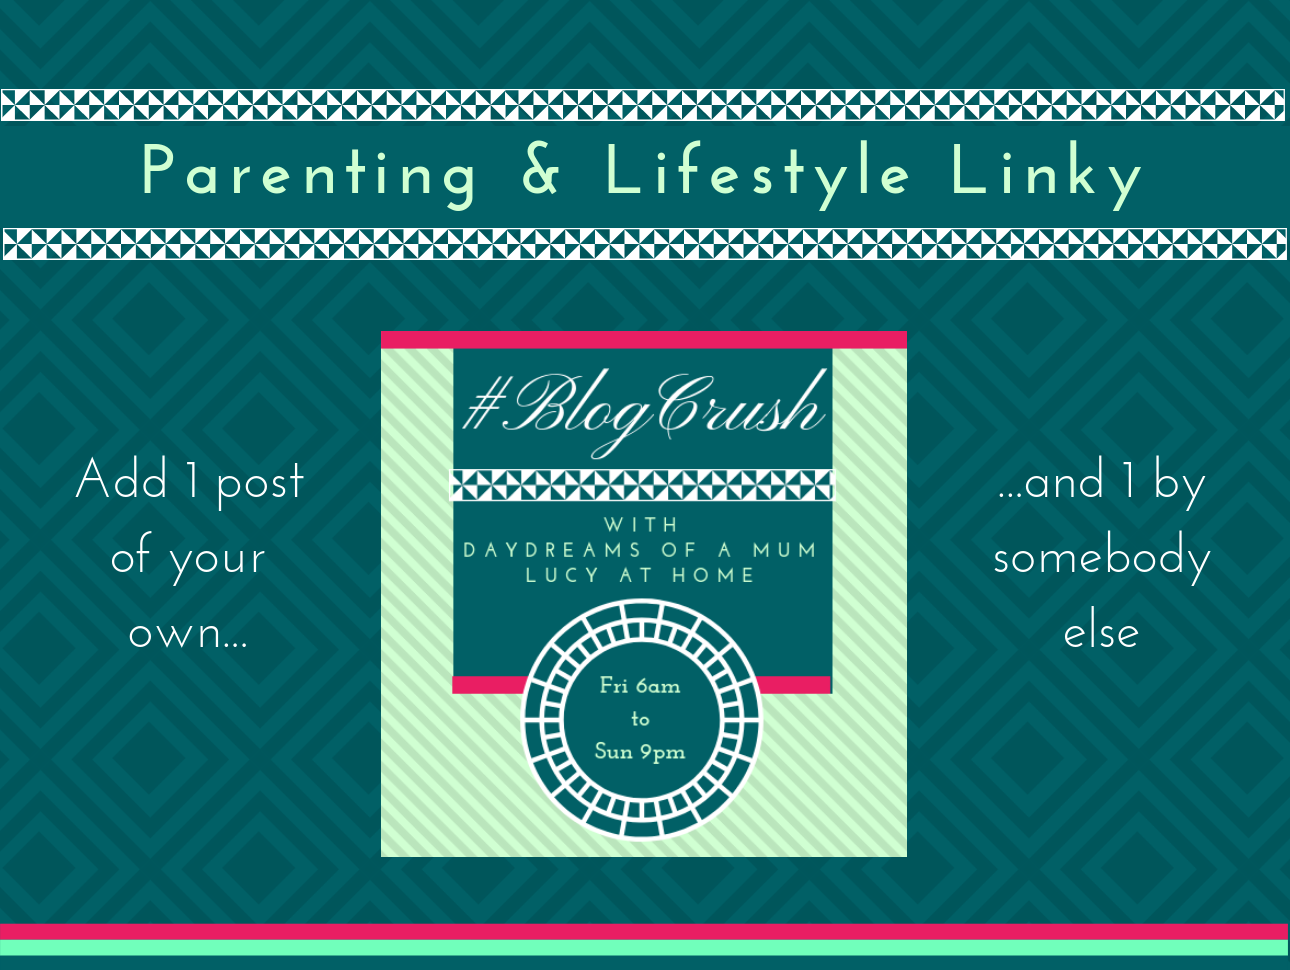 BlogCrush Linky Concept - BlogCrush Week 93